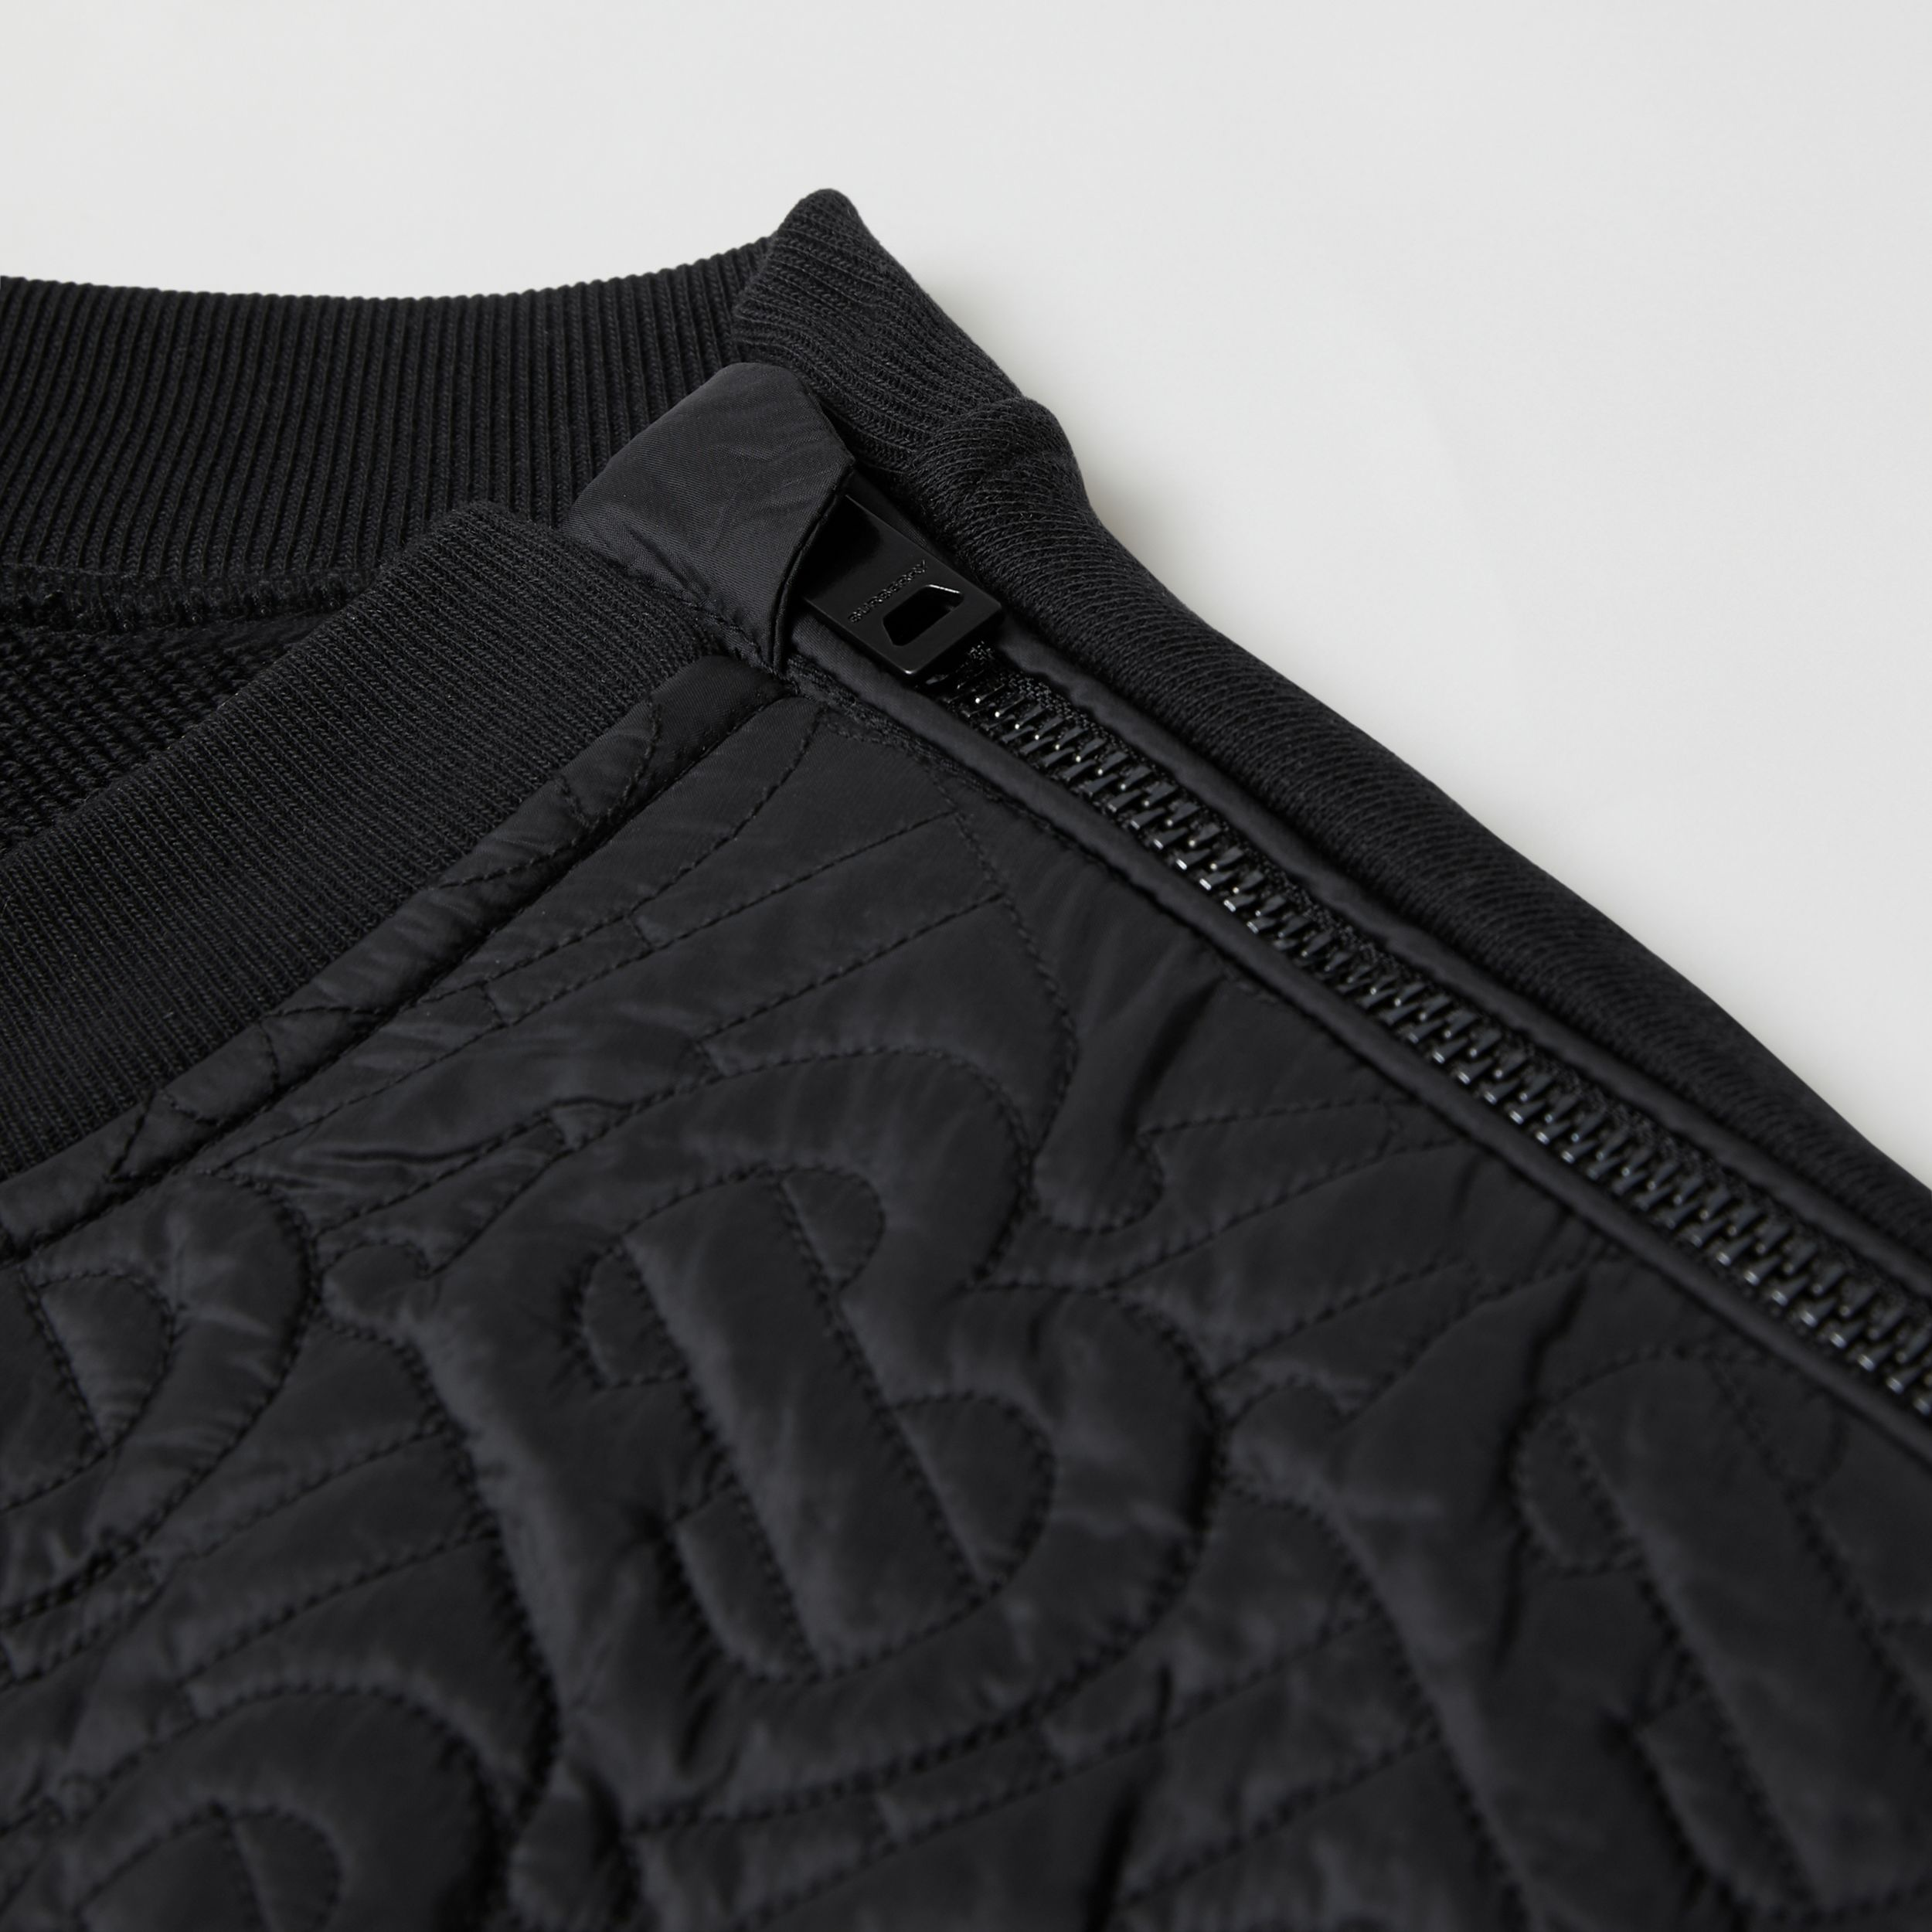 Monogram Quilted Panel Cotton Sweatshirt in Black | Burberry - 2